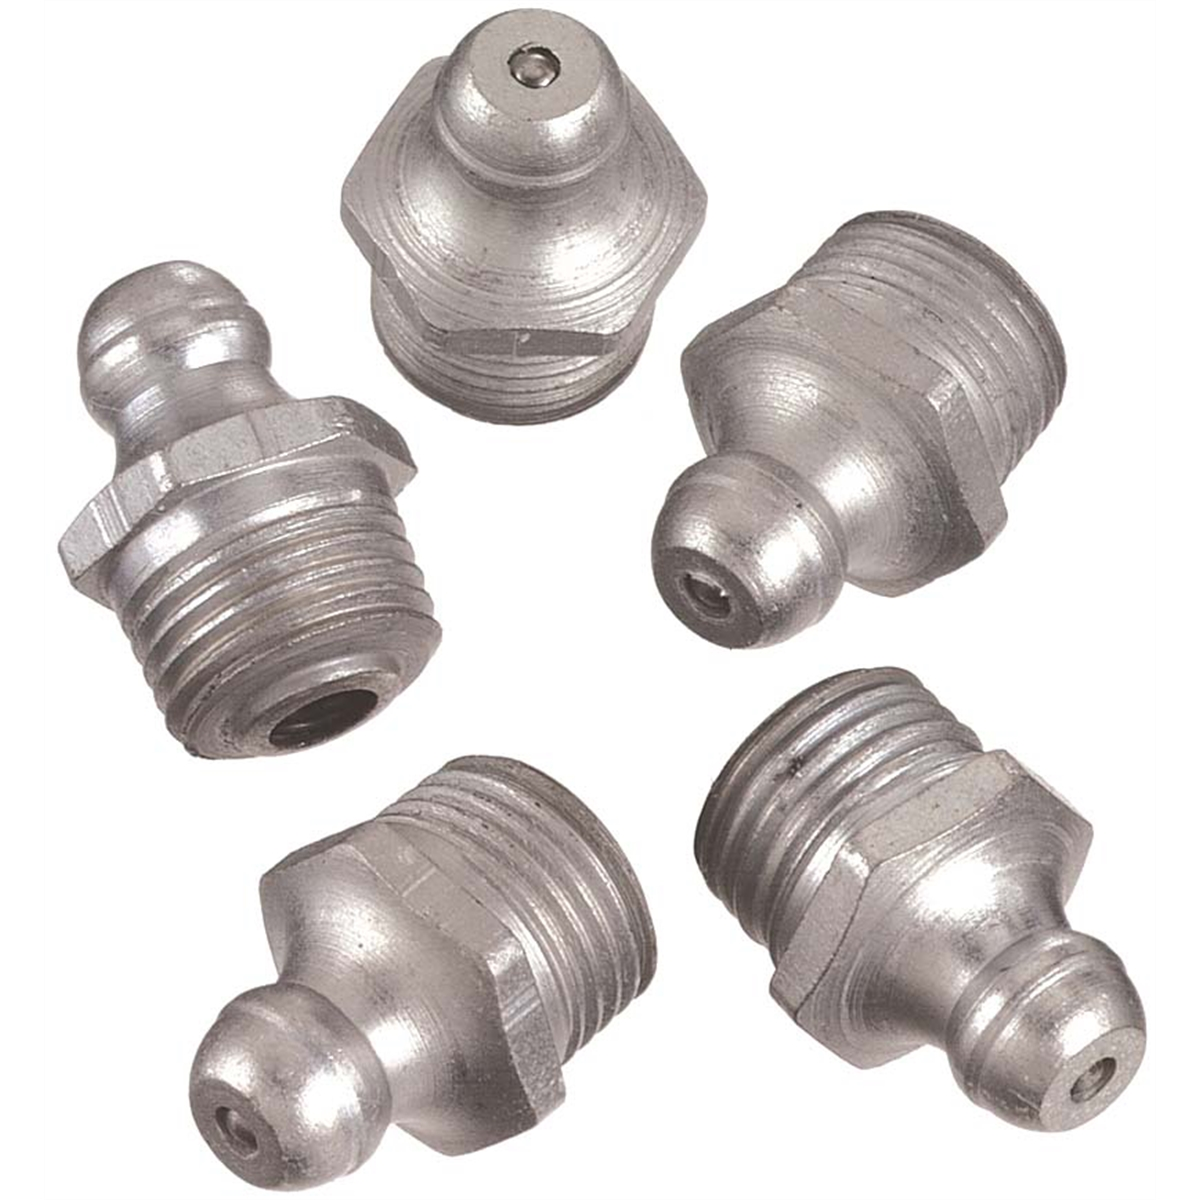 "1/8"" Straight Grease Gun Fittings 10 Count"